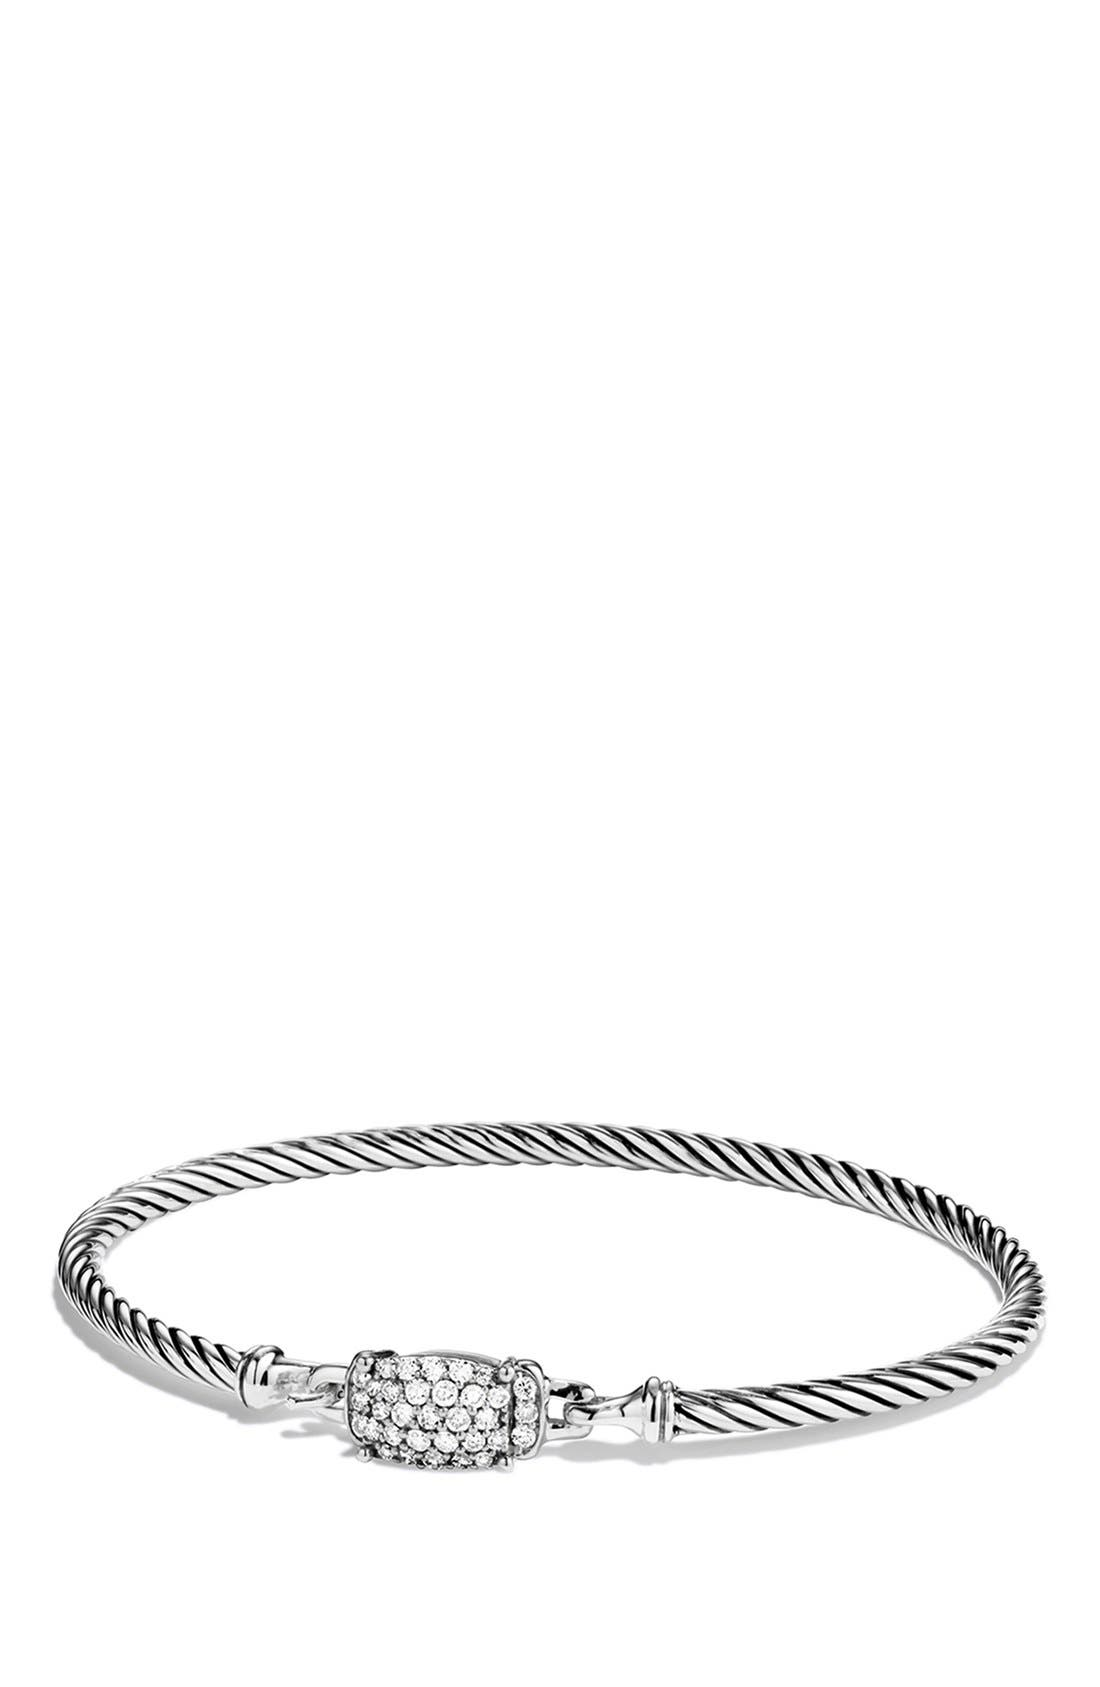 Main Image - David Yurman 'Petite Wheaton' Bracelet with Diamonds